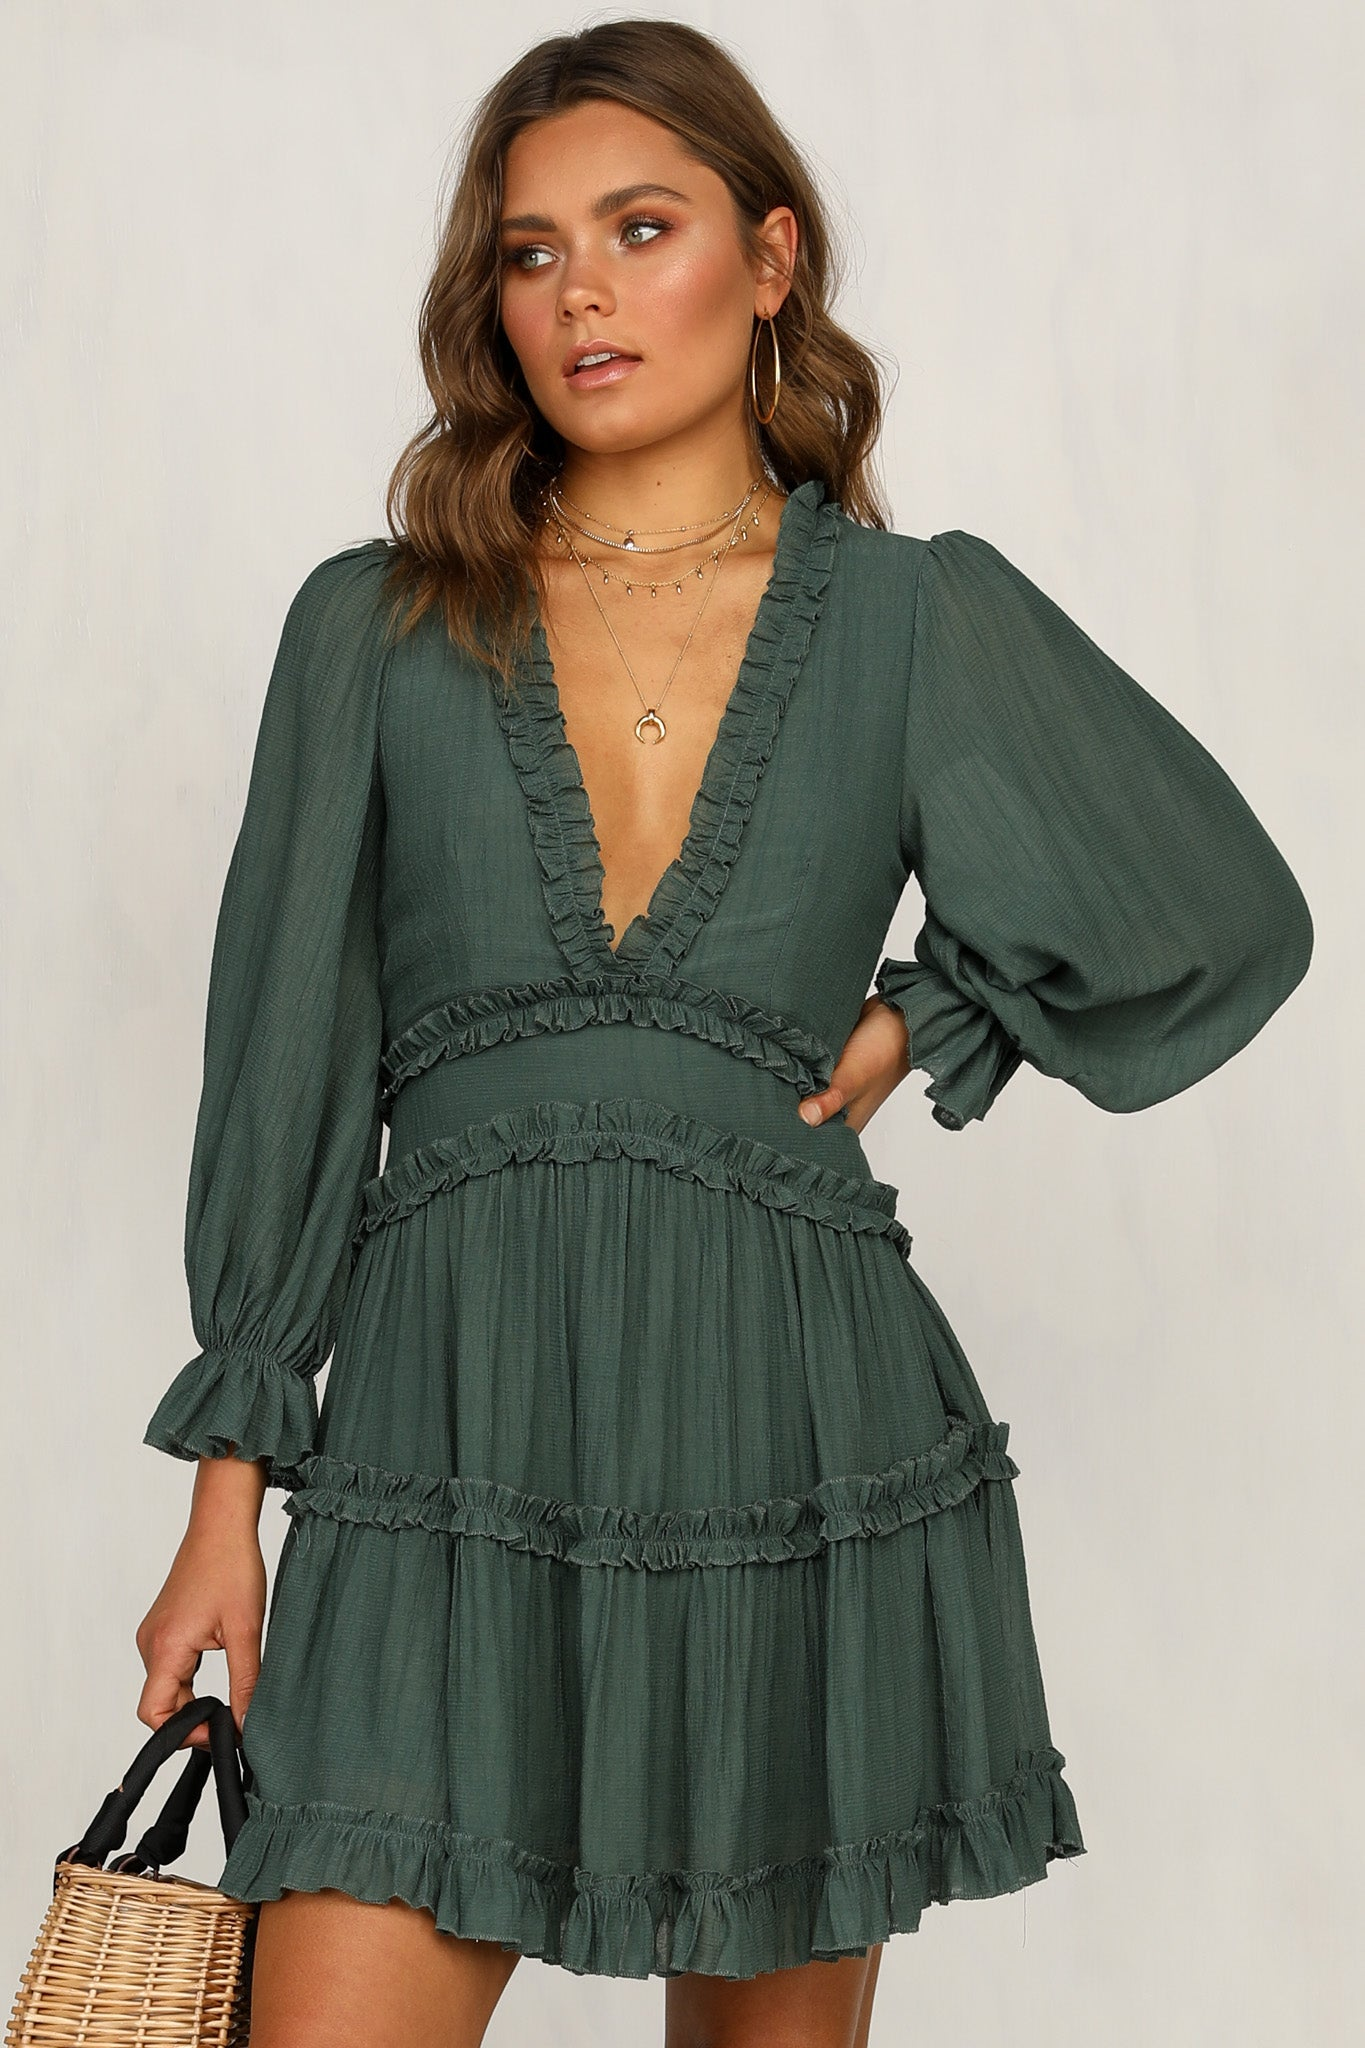 Could Be You Dress (Emerald)